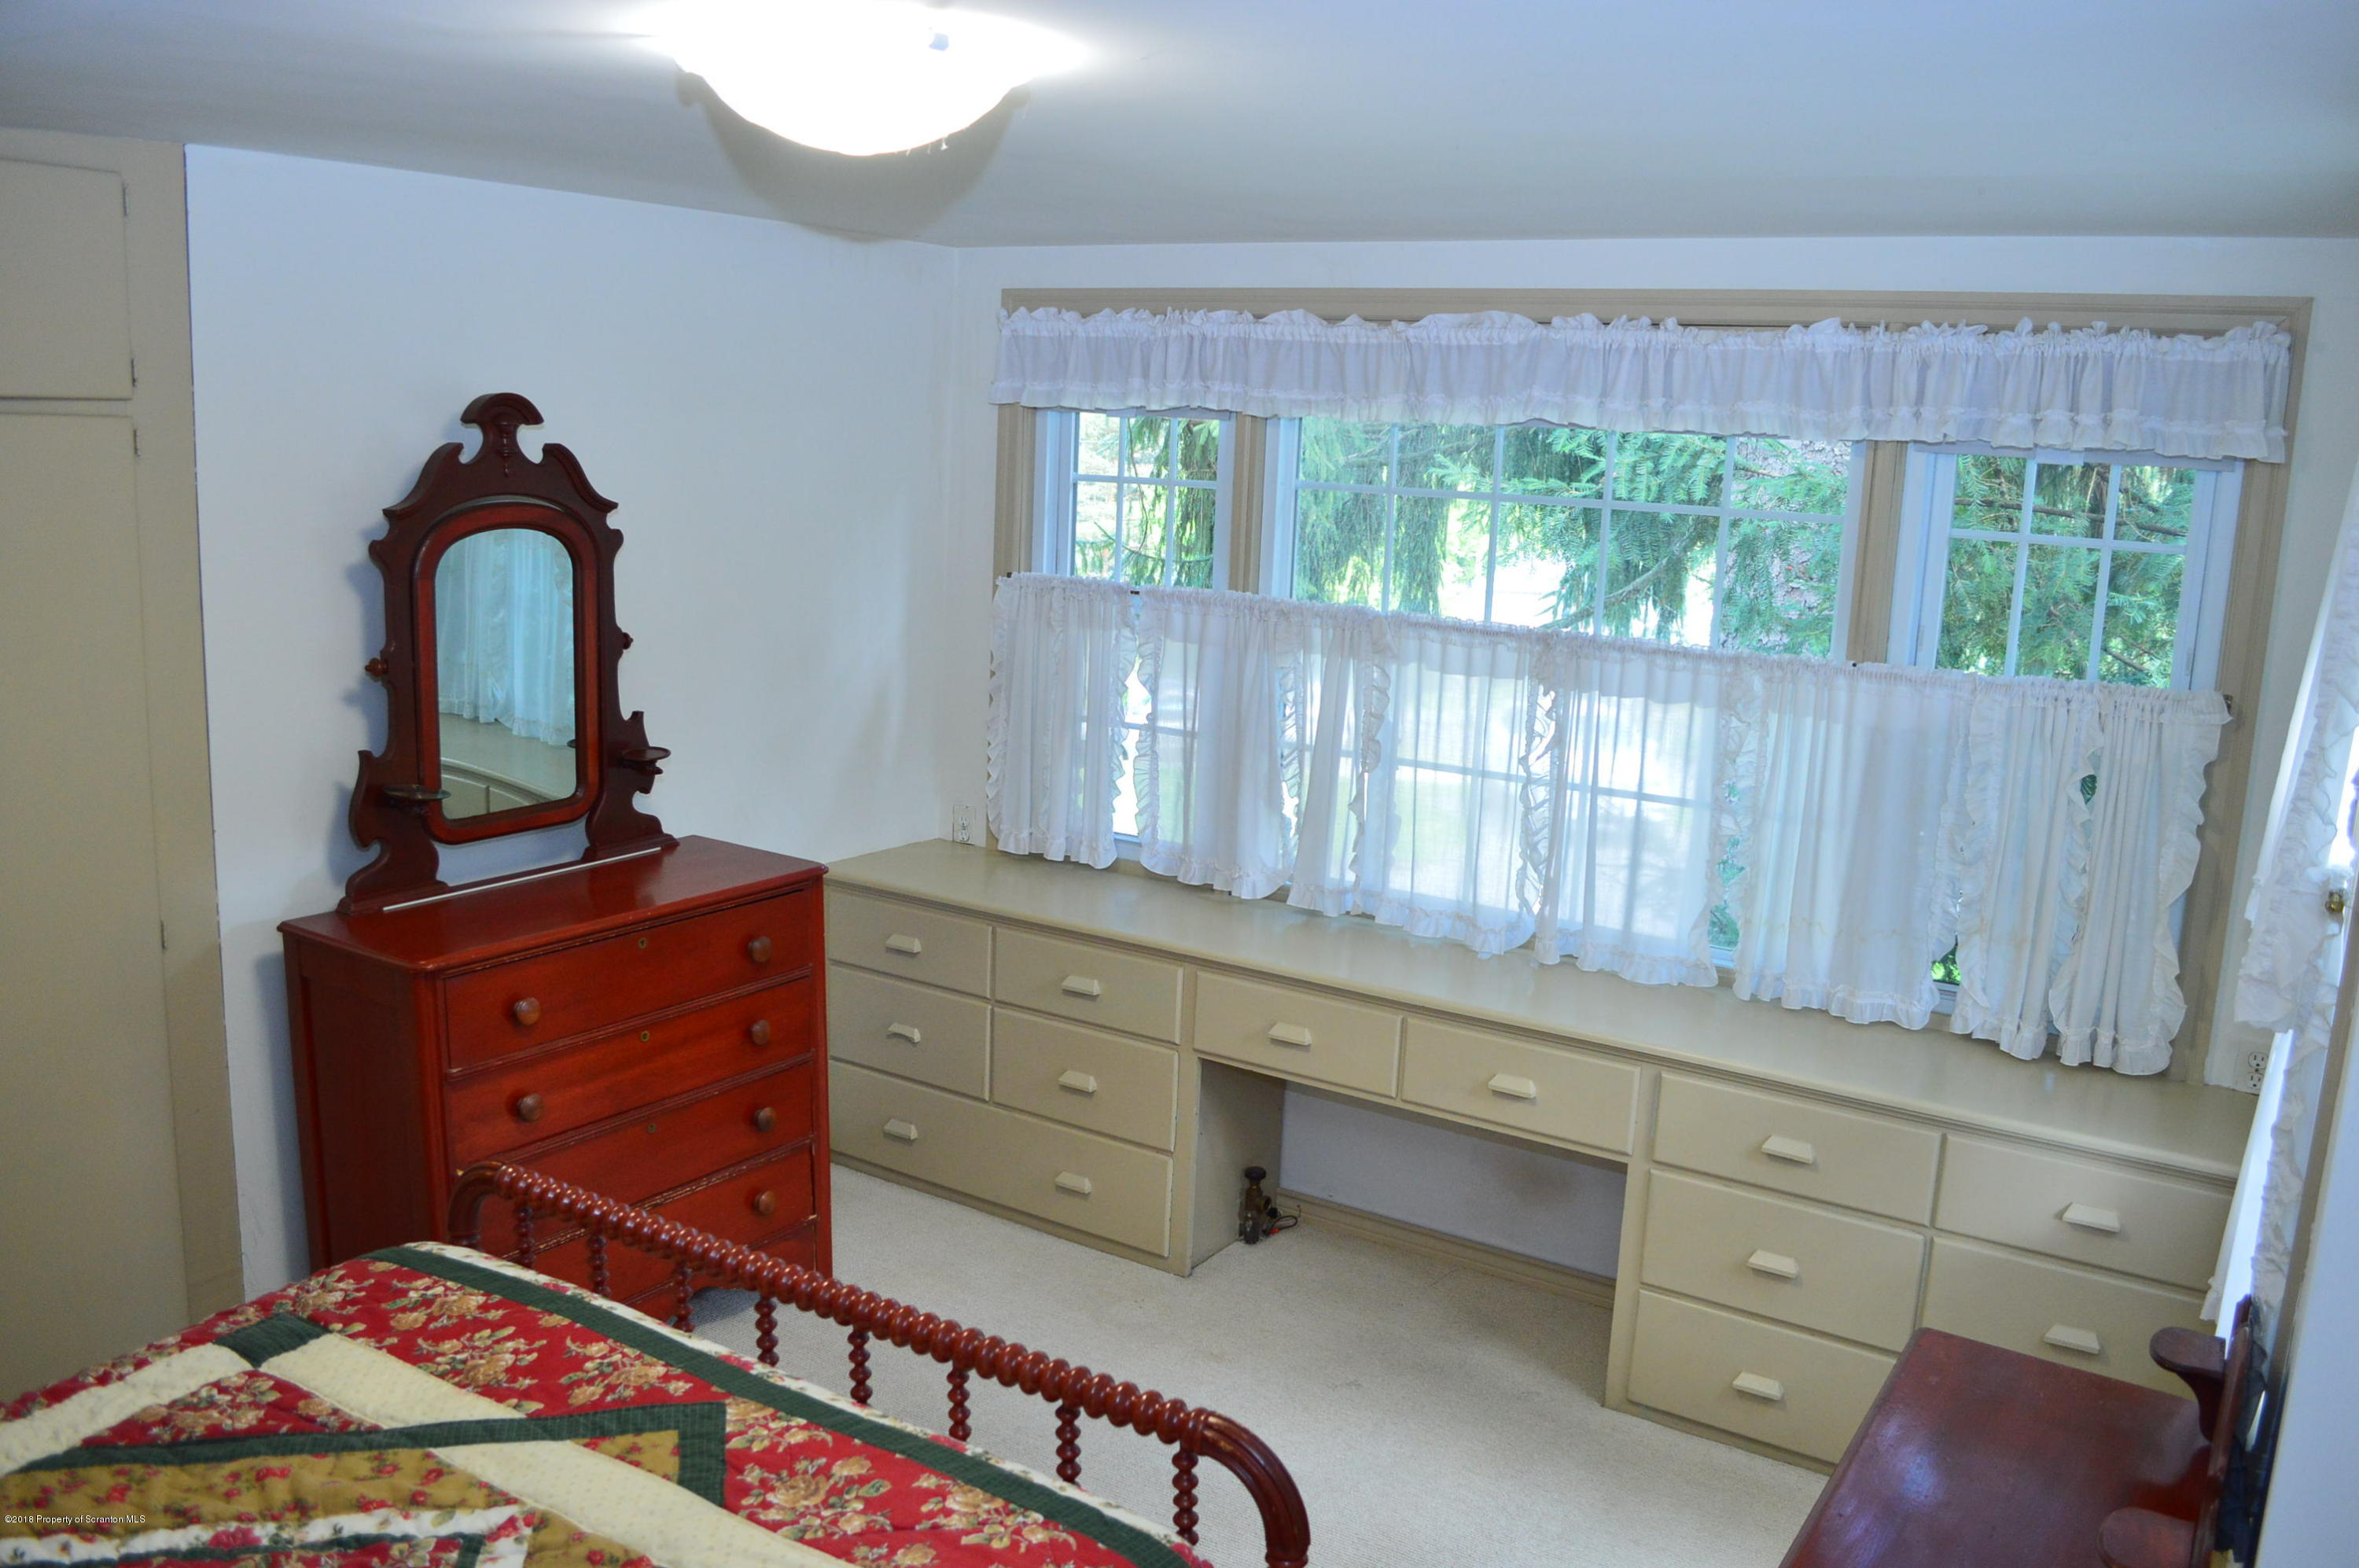 908 Grove St, Clarks Summit, Pennsylvania 18411, 3 Bedrooms Bedrooms, 6 Rooms Rooms,2 BathroomsBathrooms,Single Family,For Sale,Grove,18-4717